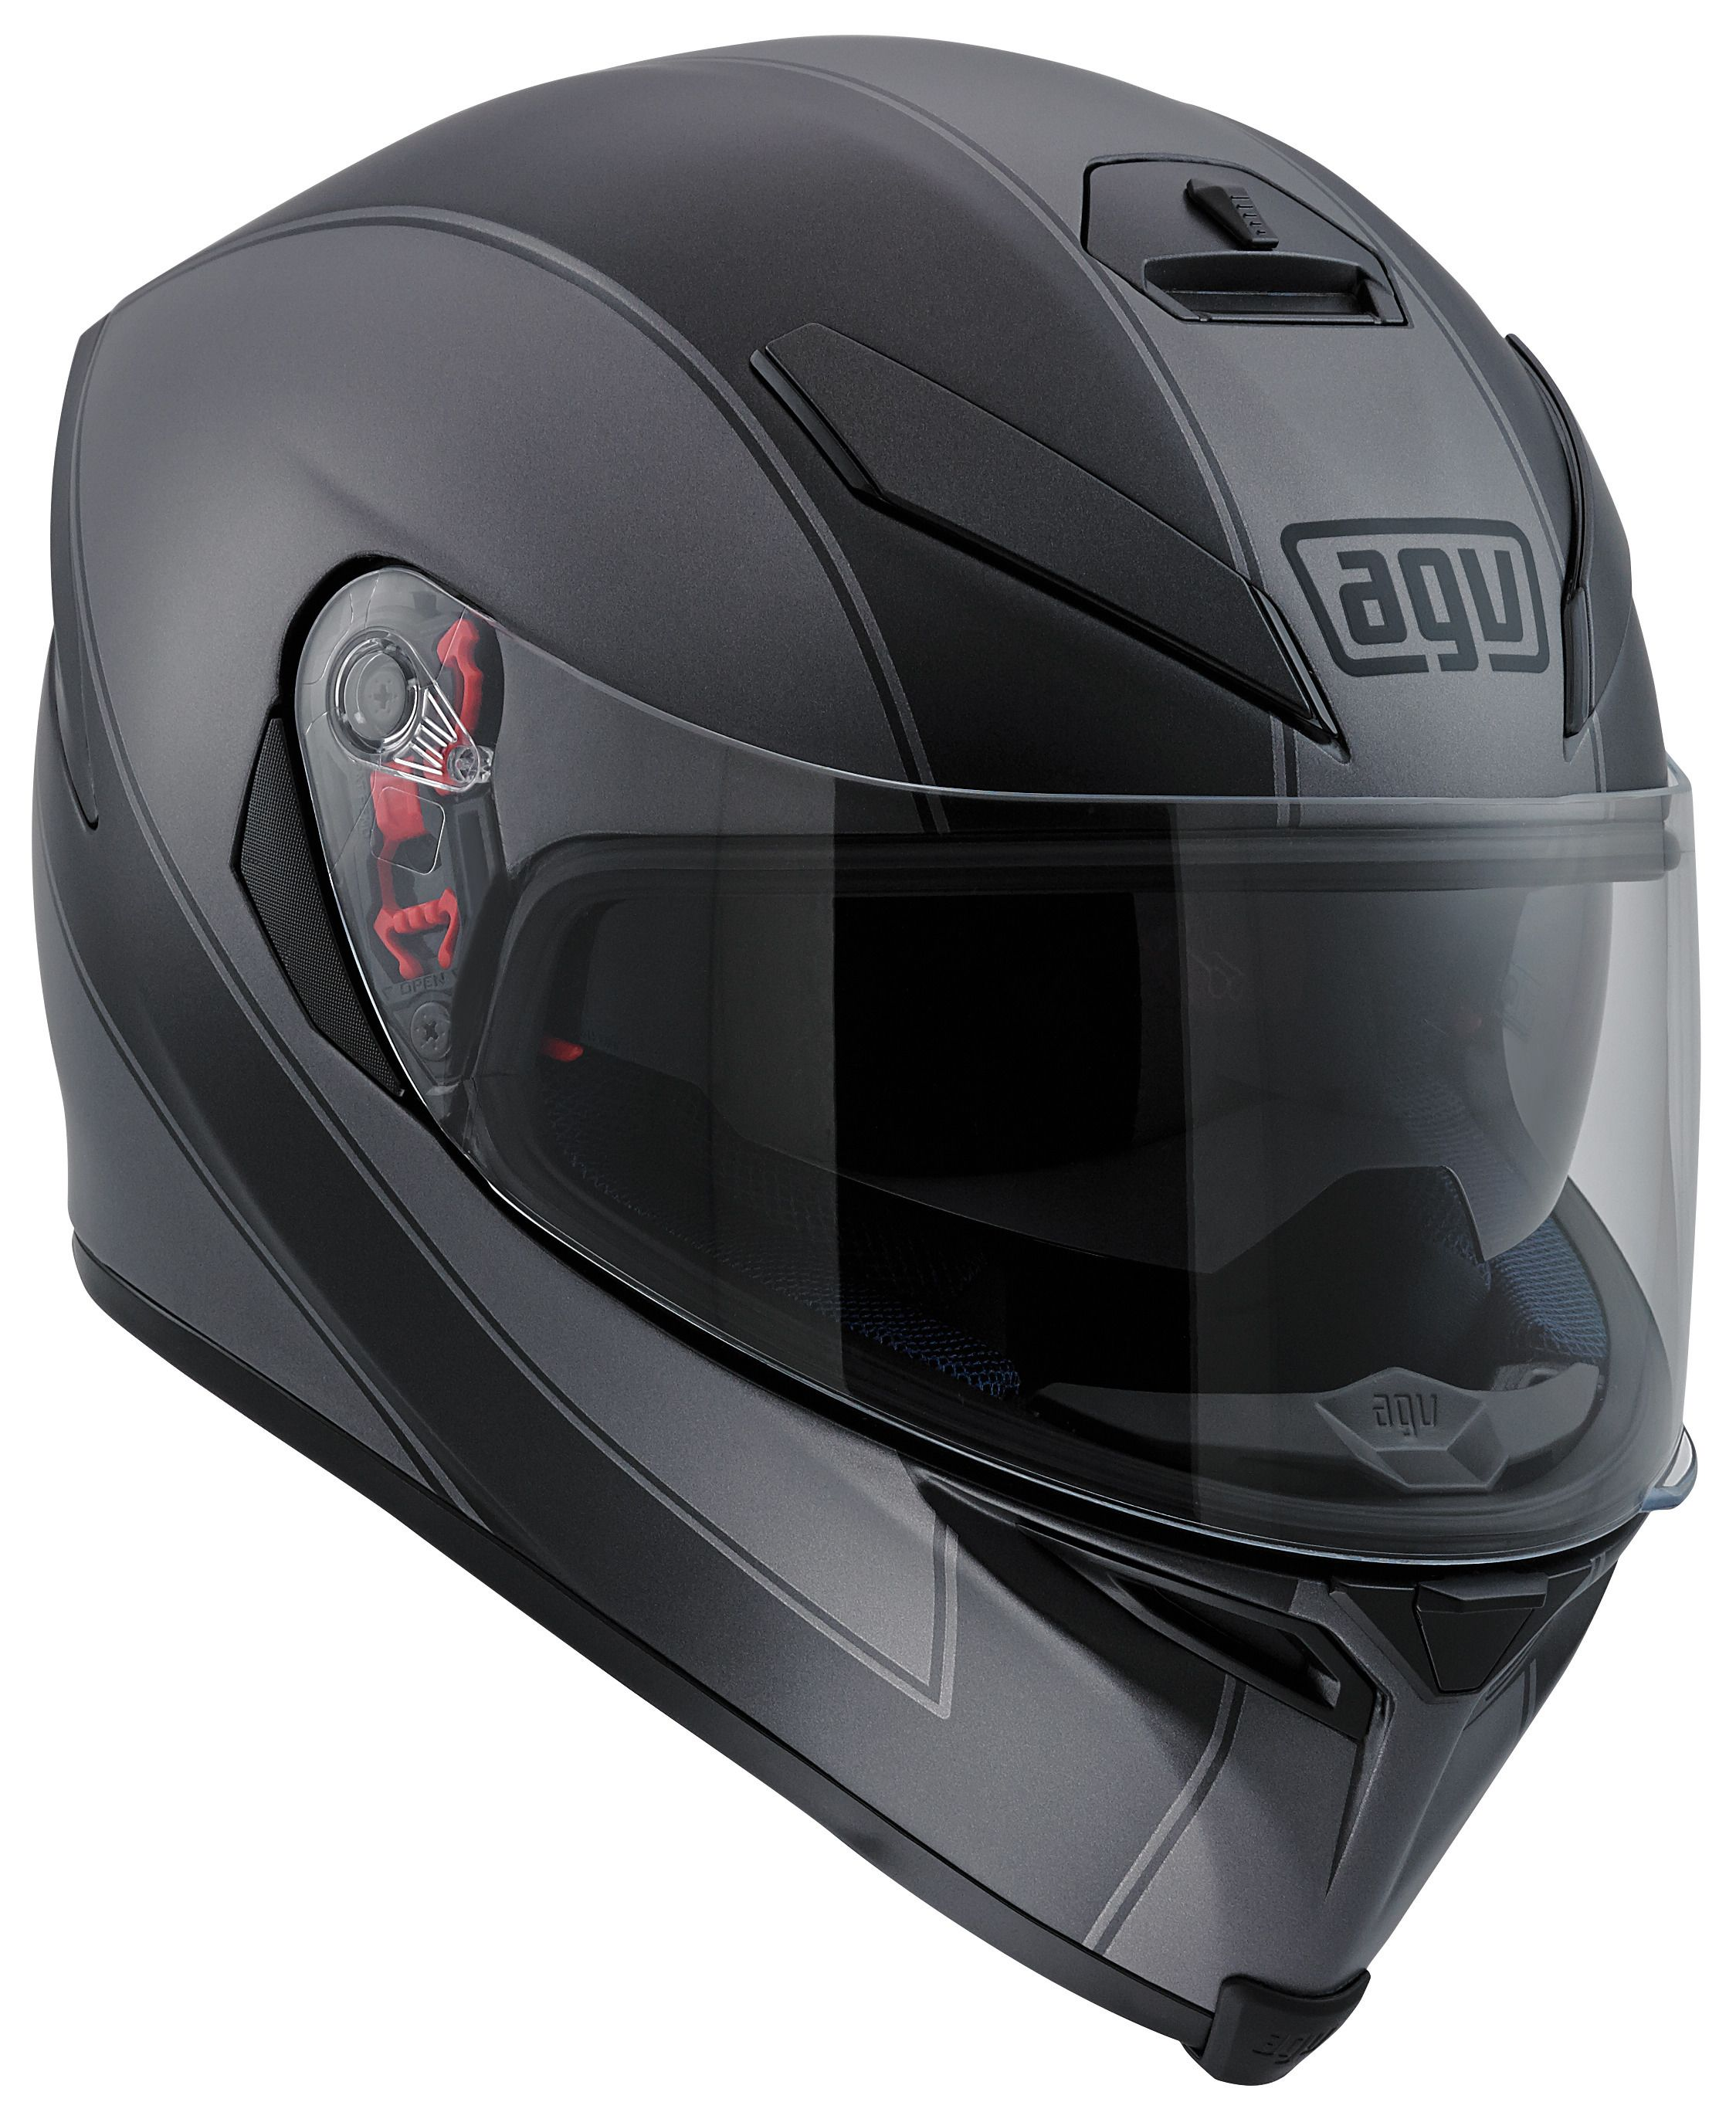 Get it delivered to your door - AGV K-5 S MULTI ENLACE - 7550 (EGP)